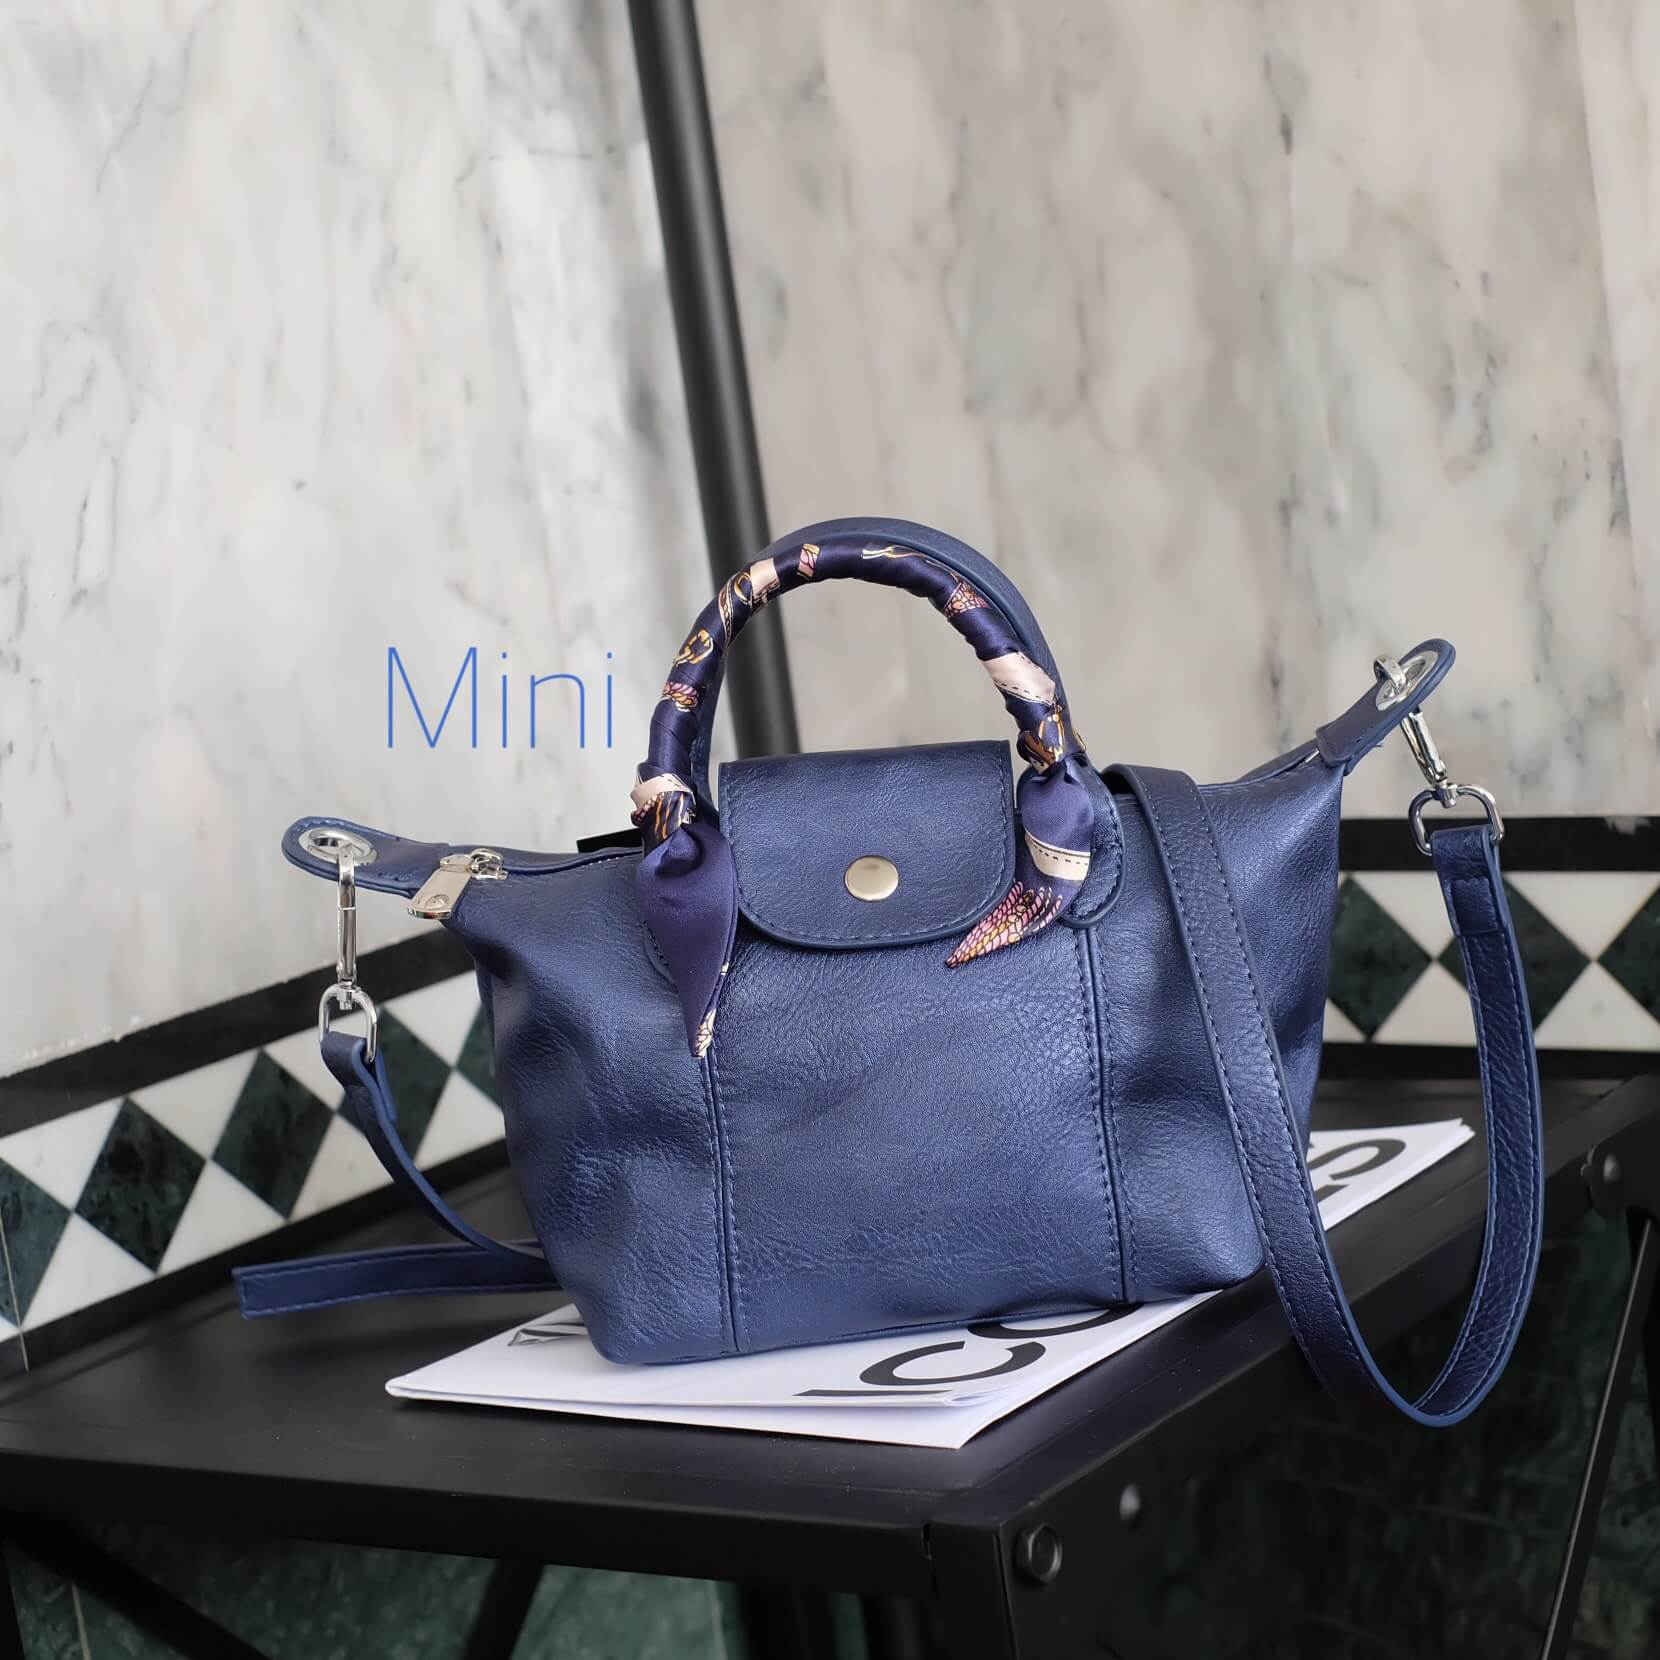 กระเป๋า KEEP Mini Longchamp Duo Sister Smoke Grey ราคา 1,390 บาท Free Ems